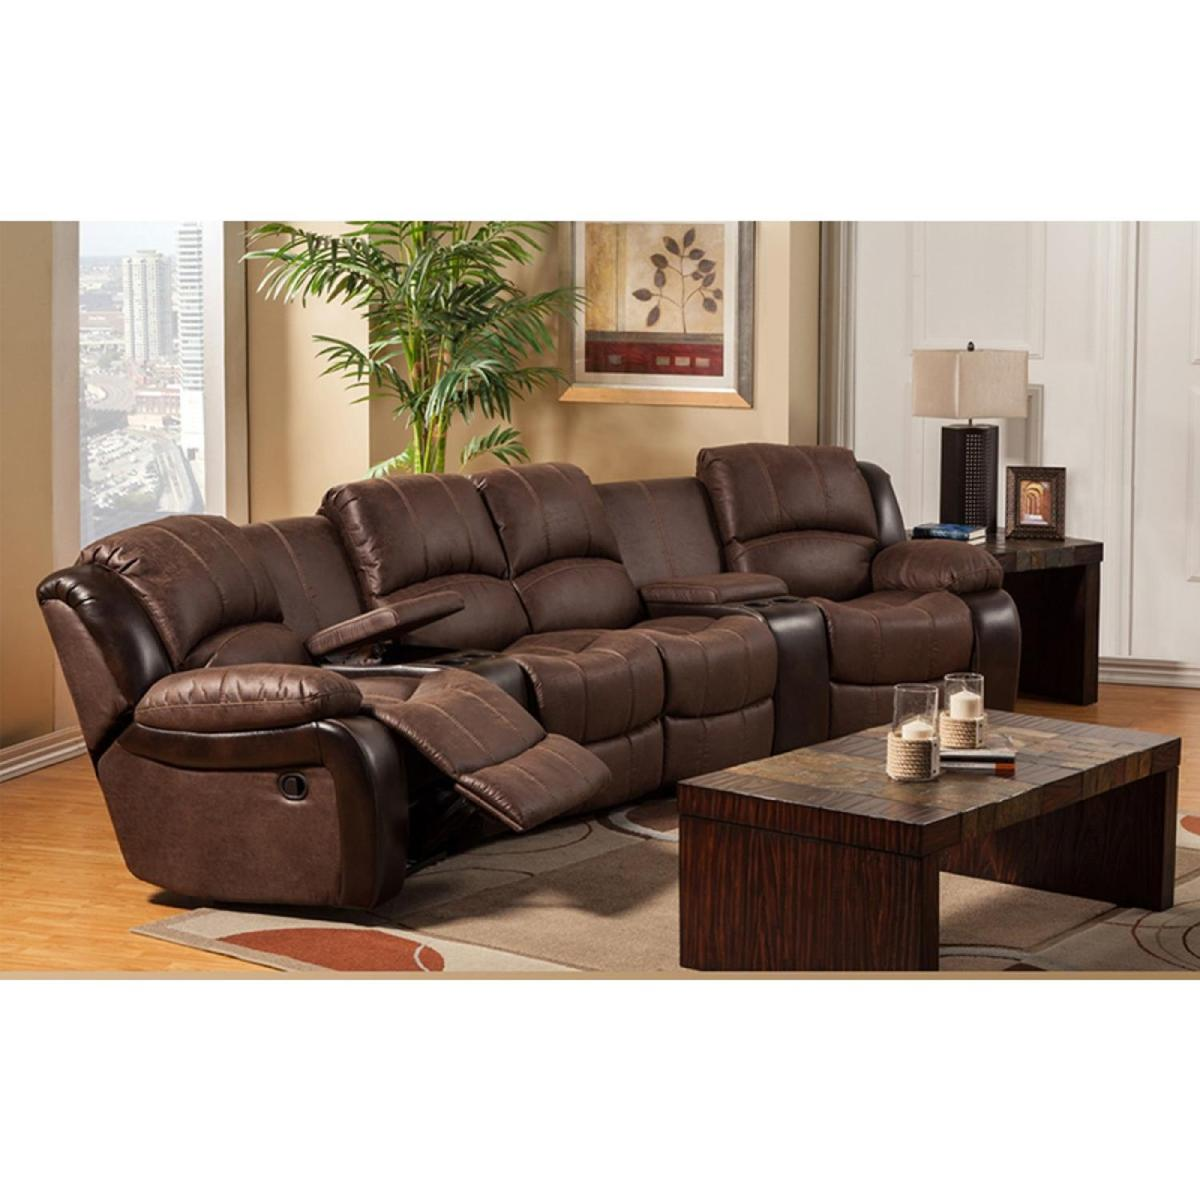 Home Theater Couch Living Room Furniture 5